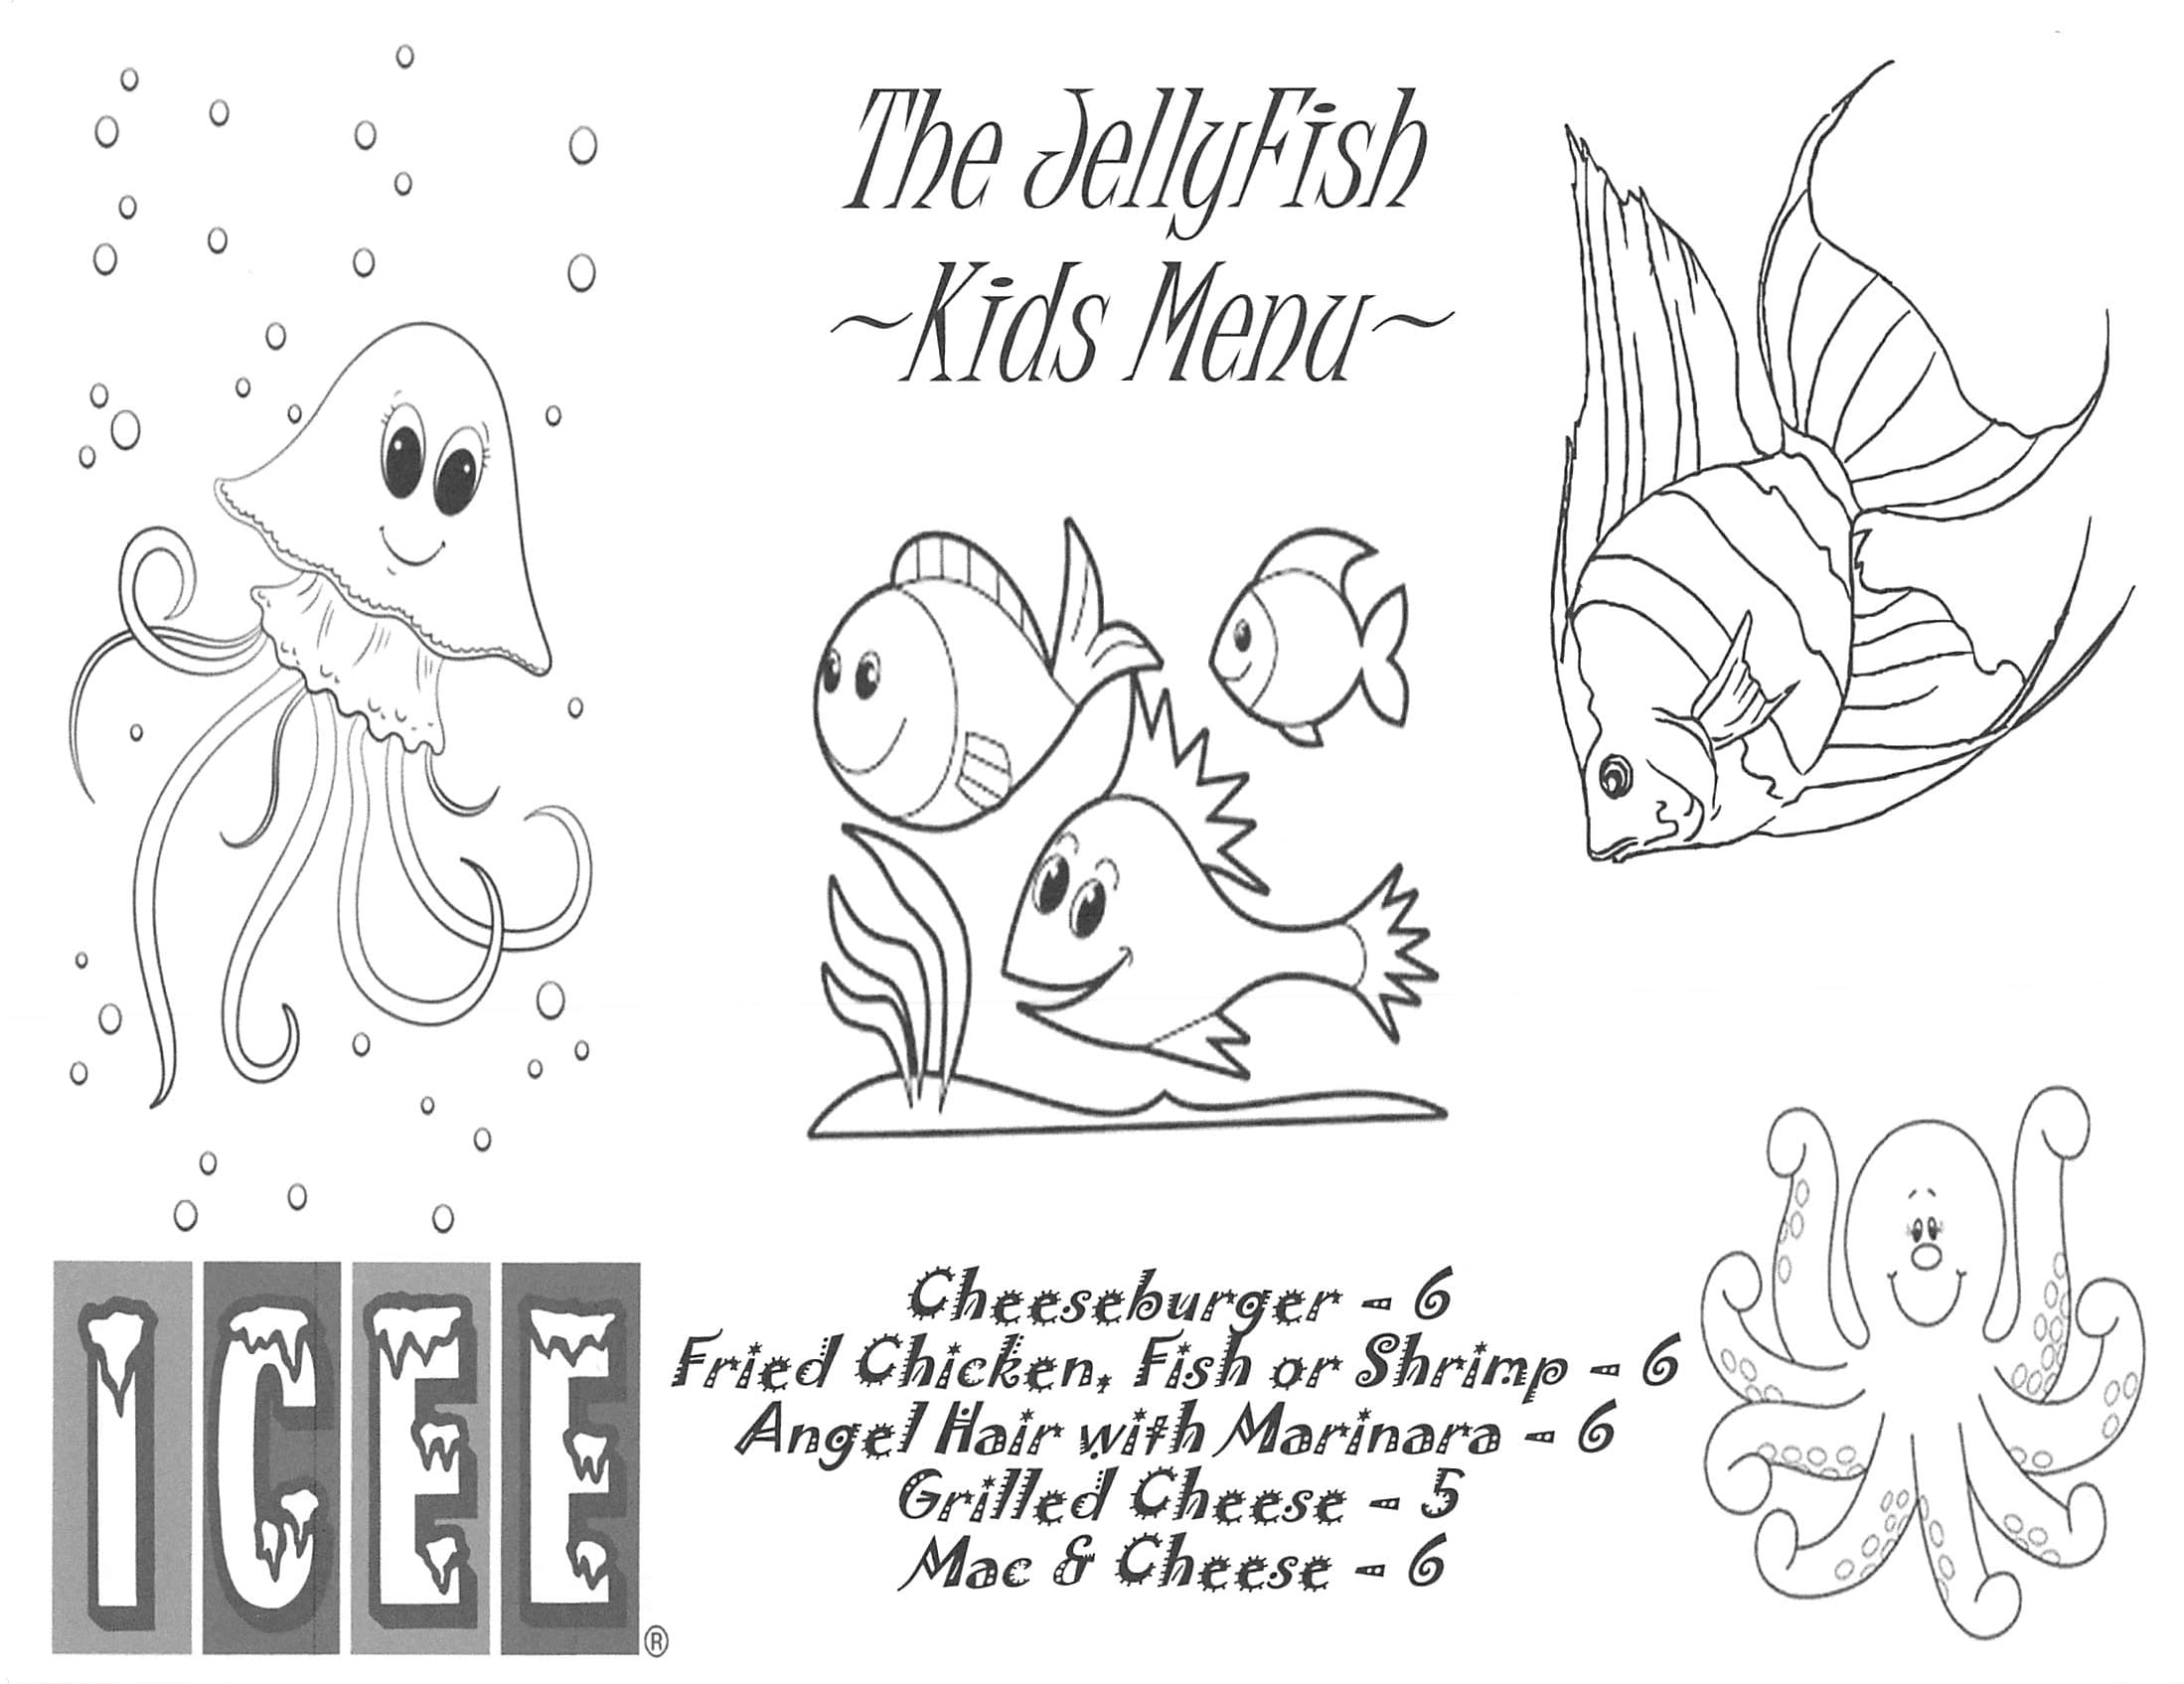 jellyfish kids menu